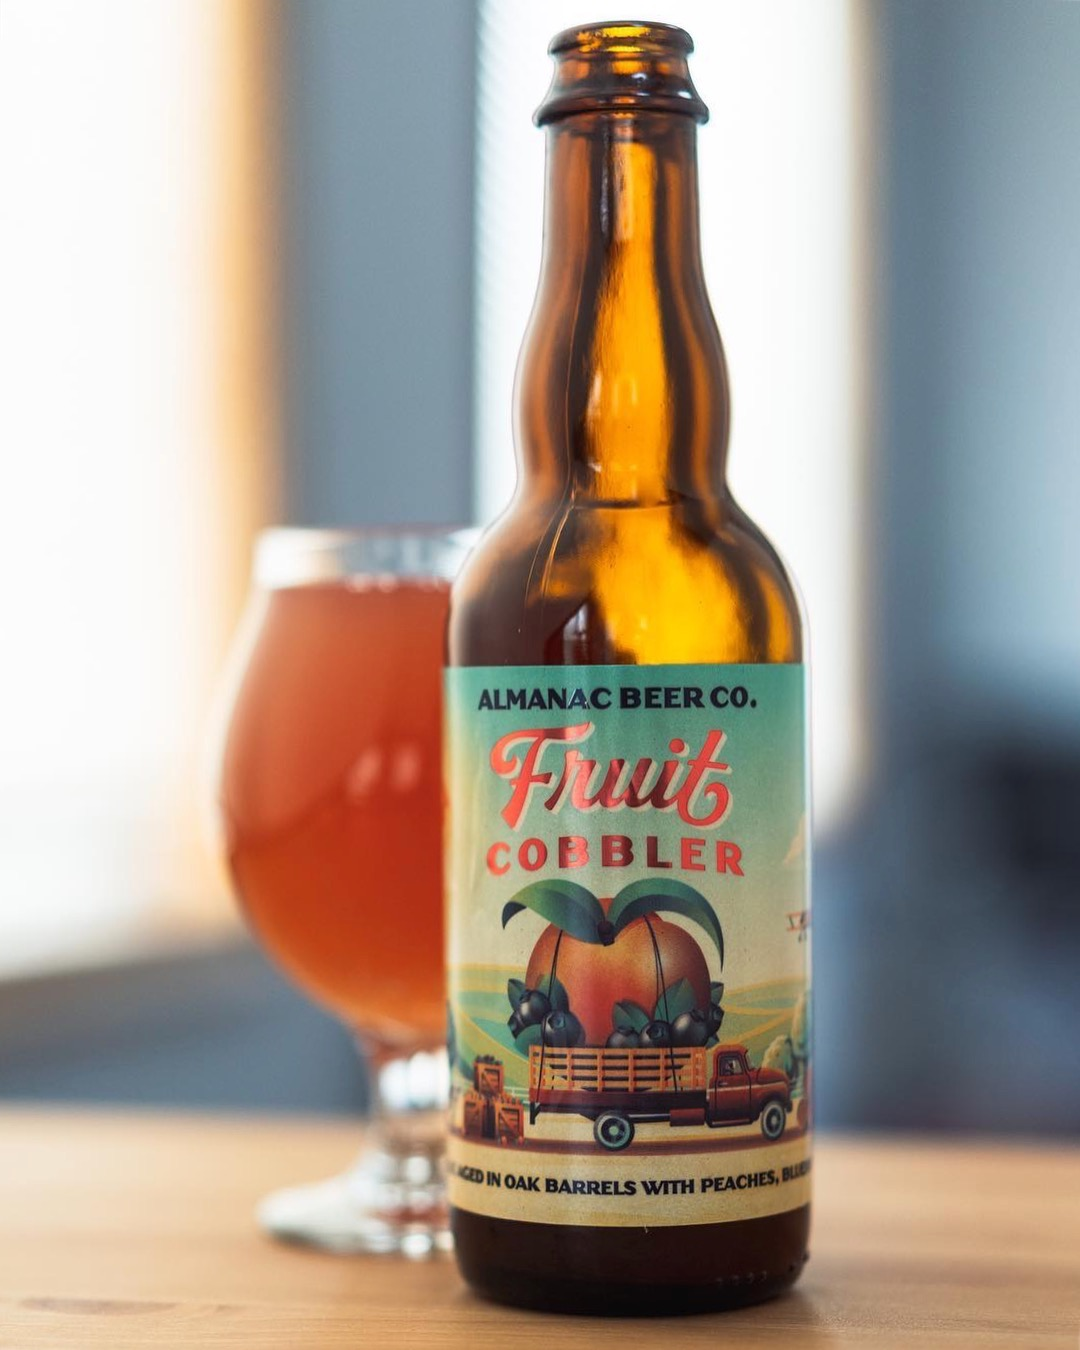 Almanac Beer Co. Fruit Cobbler label by DKNG